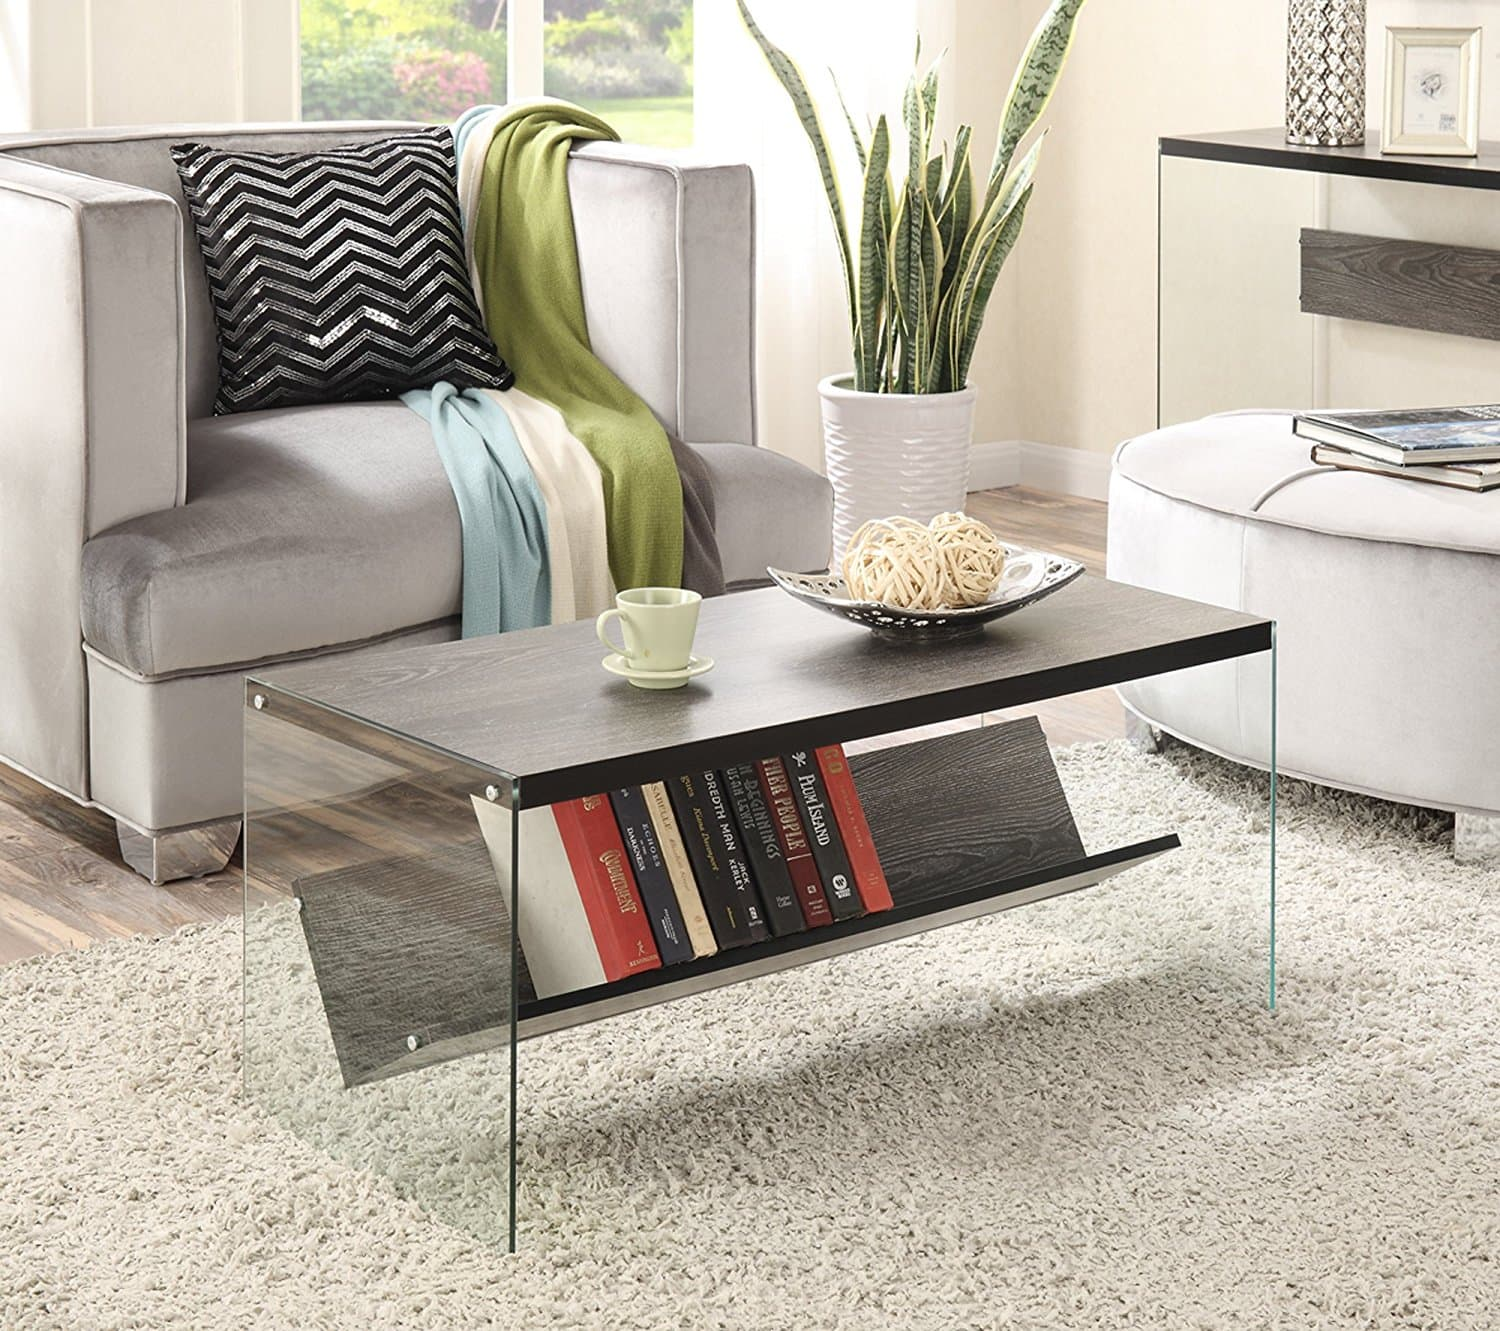 The Most Inspired Unique Contemporary Coffee Tables Ideas: Cheap Coffee Tables Under $100 That Work For Every Style